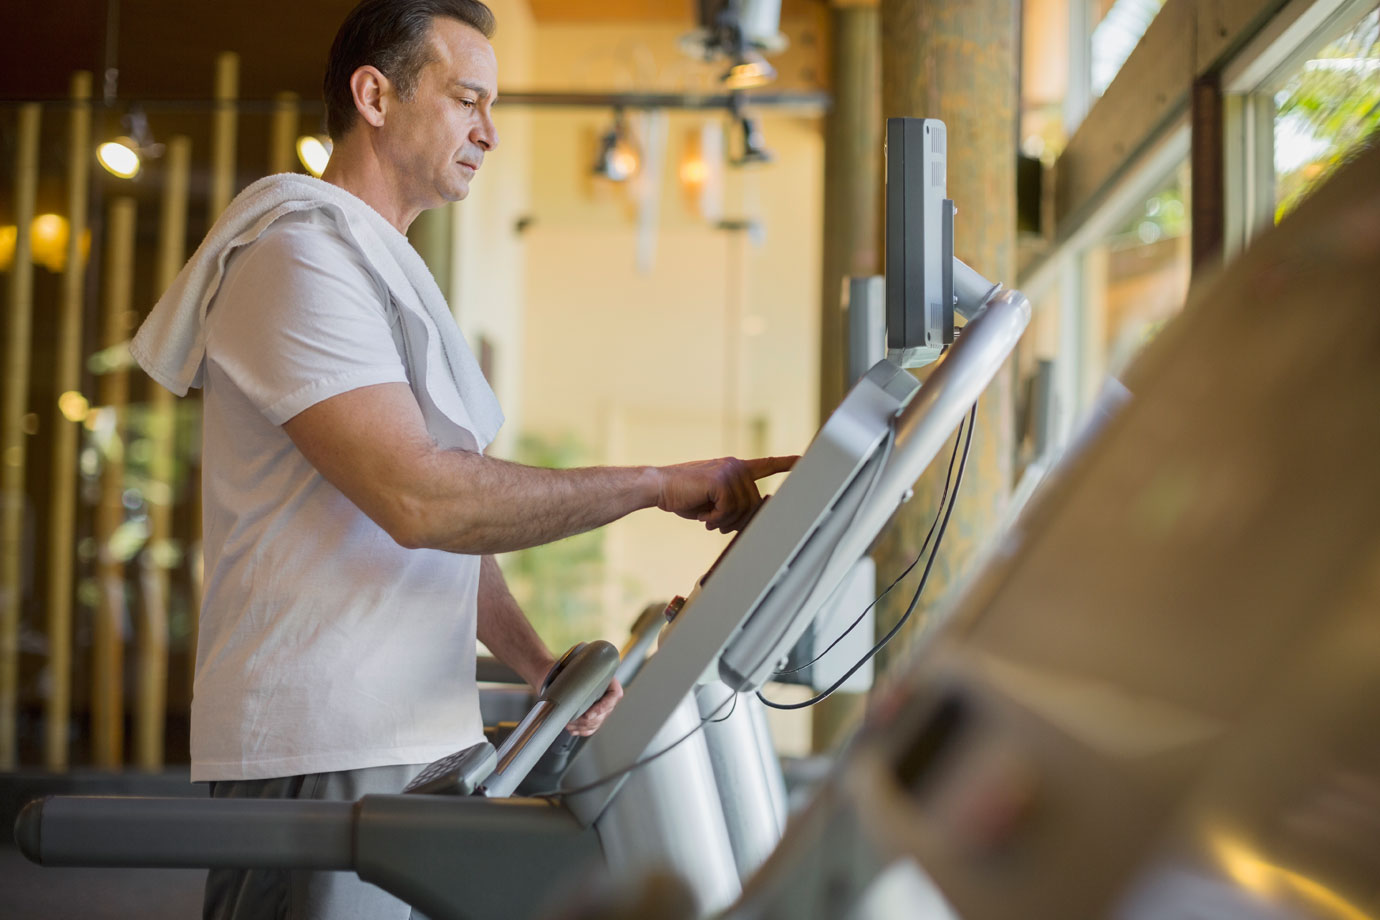 How Middled-aged Men Can Slash Their Risk of Heart Failure By 30%